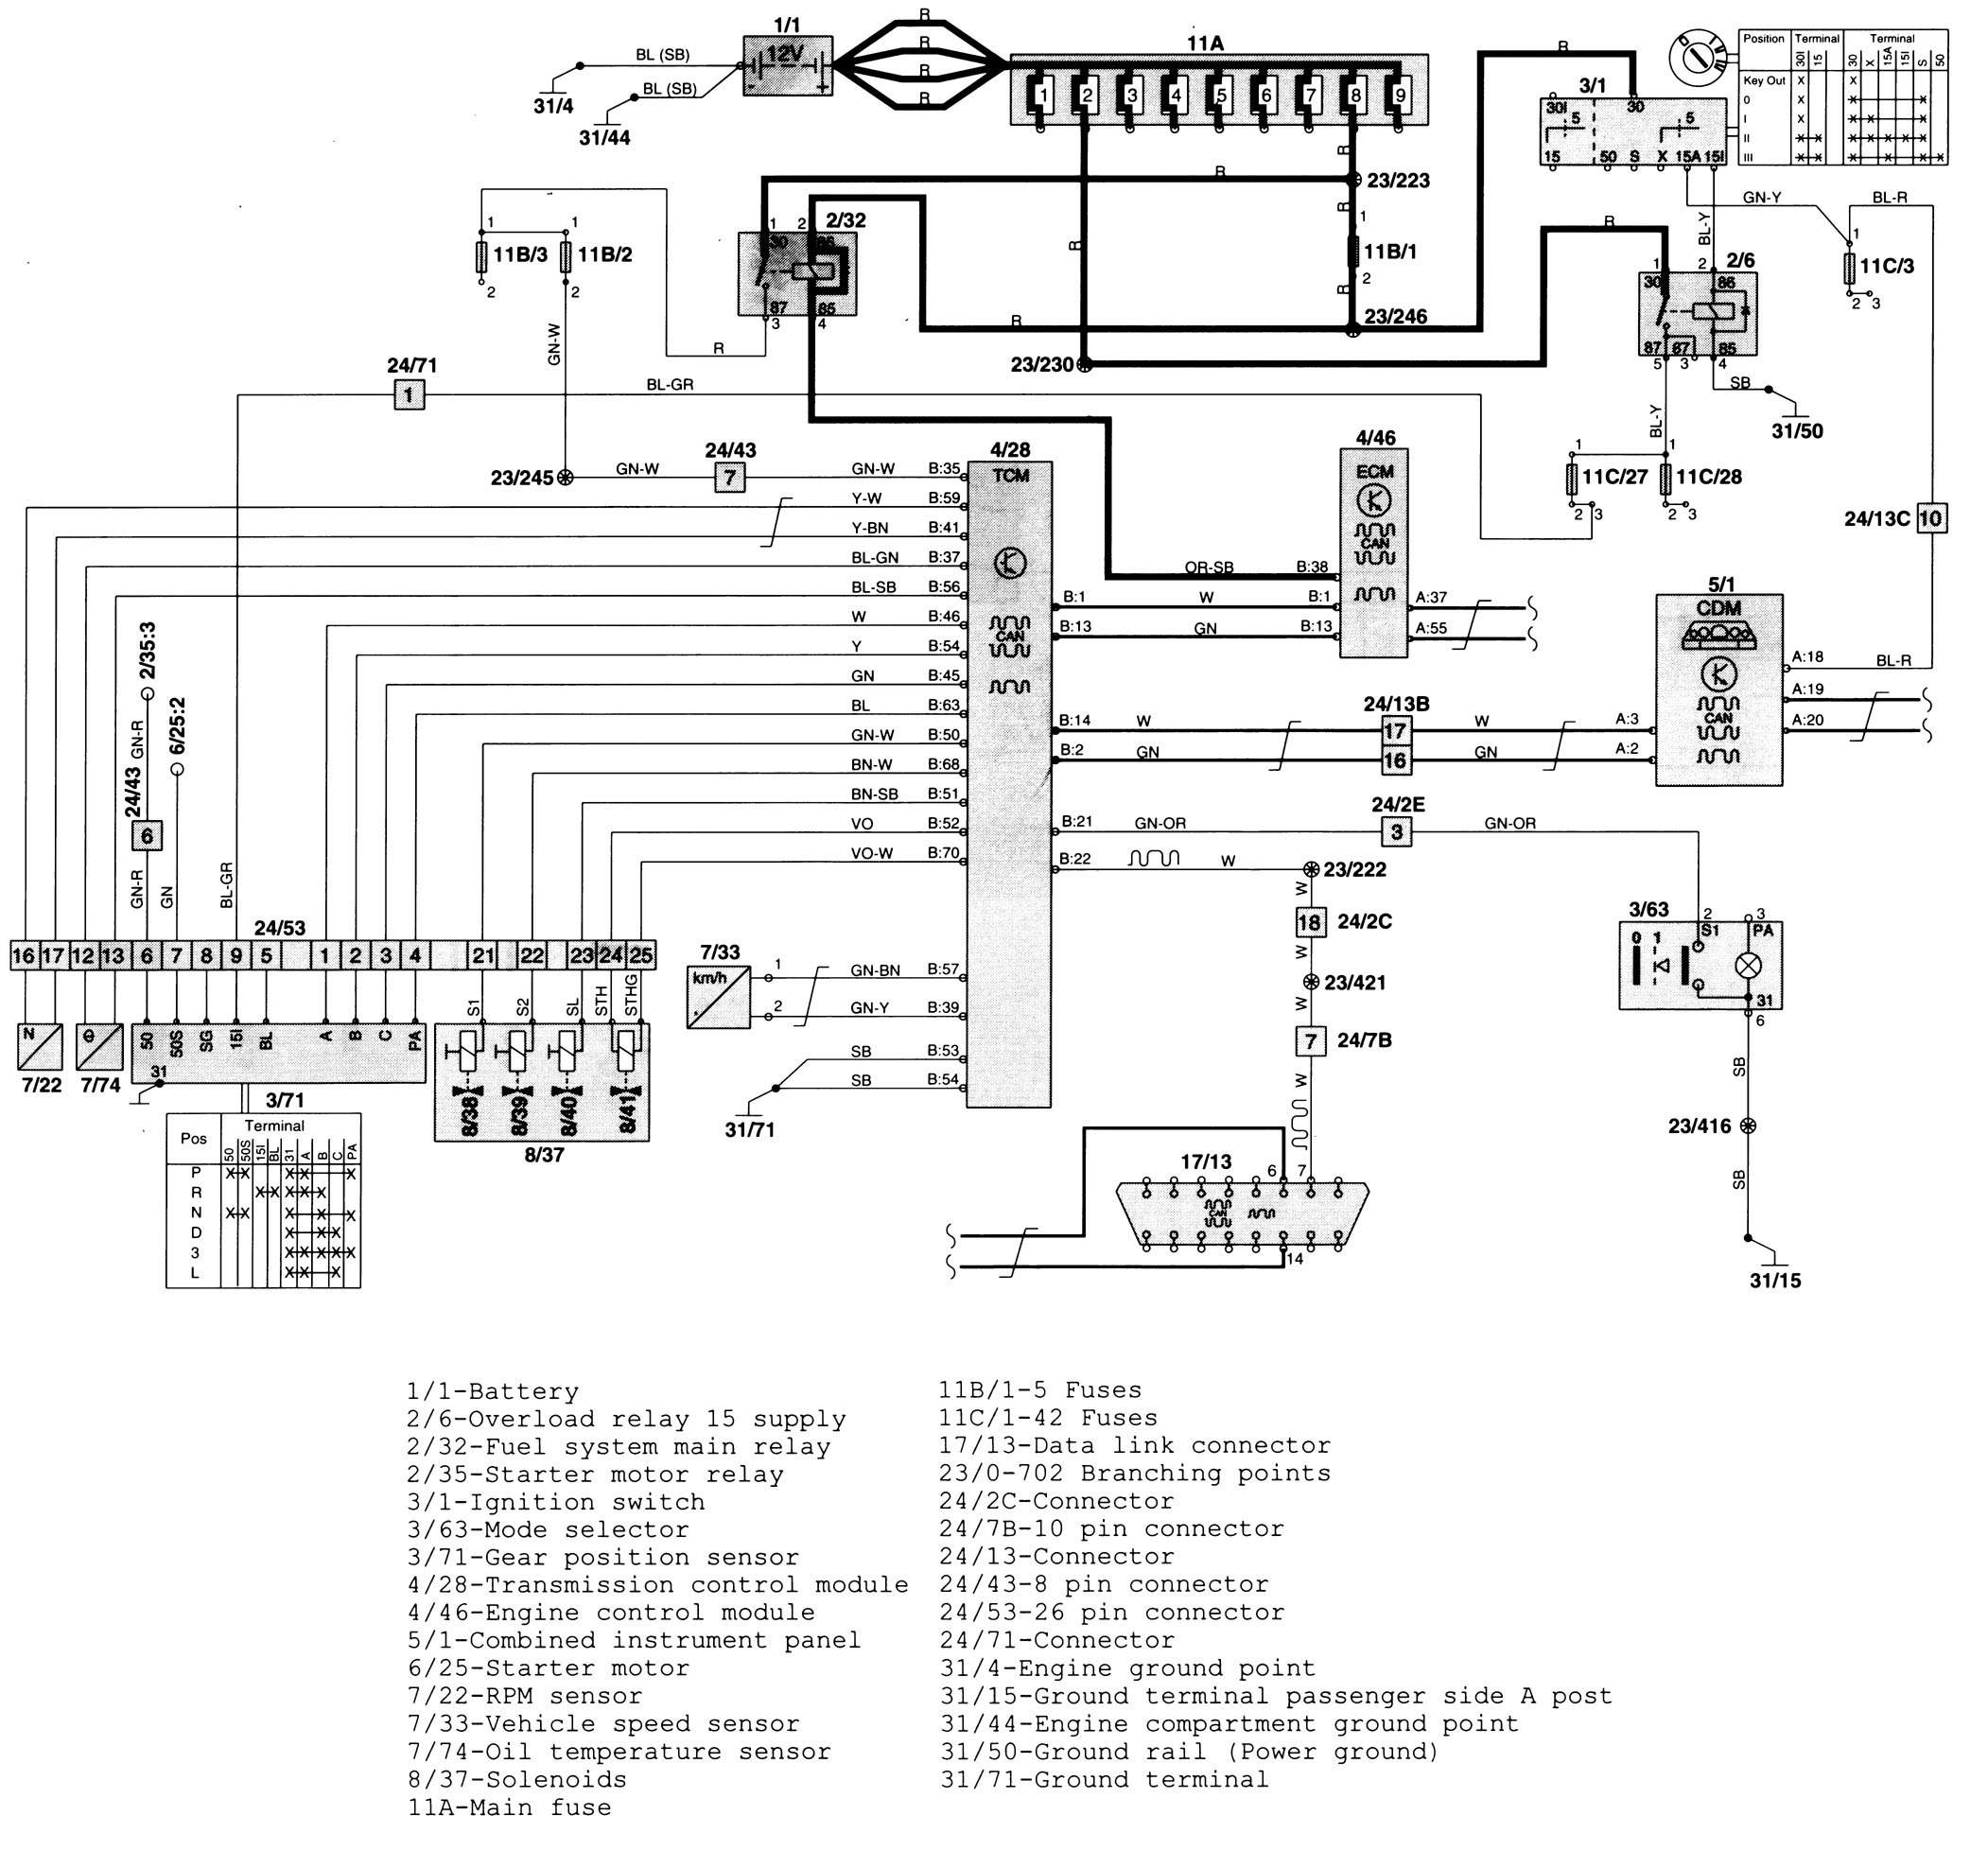 1996 Gmc Sonoma 2 Wiring Diagram Diagrams Engine Schematic Transmission 2001 Radio 1997